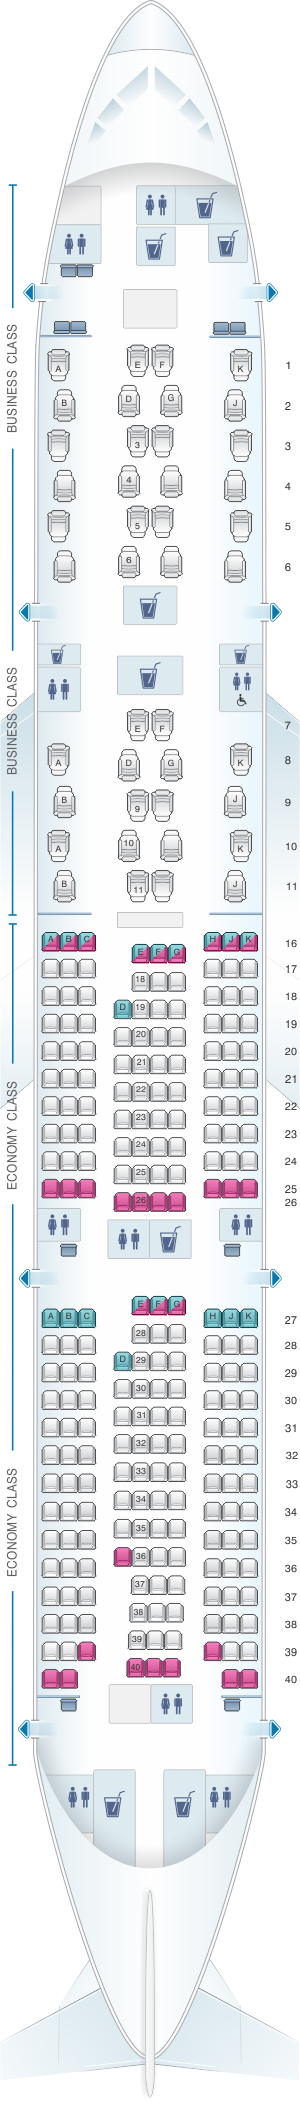 Seat map for Qatar Airways Boeing B777 200LR Qsuite